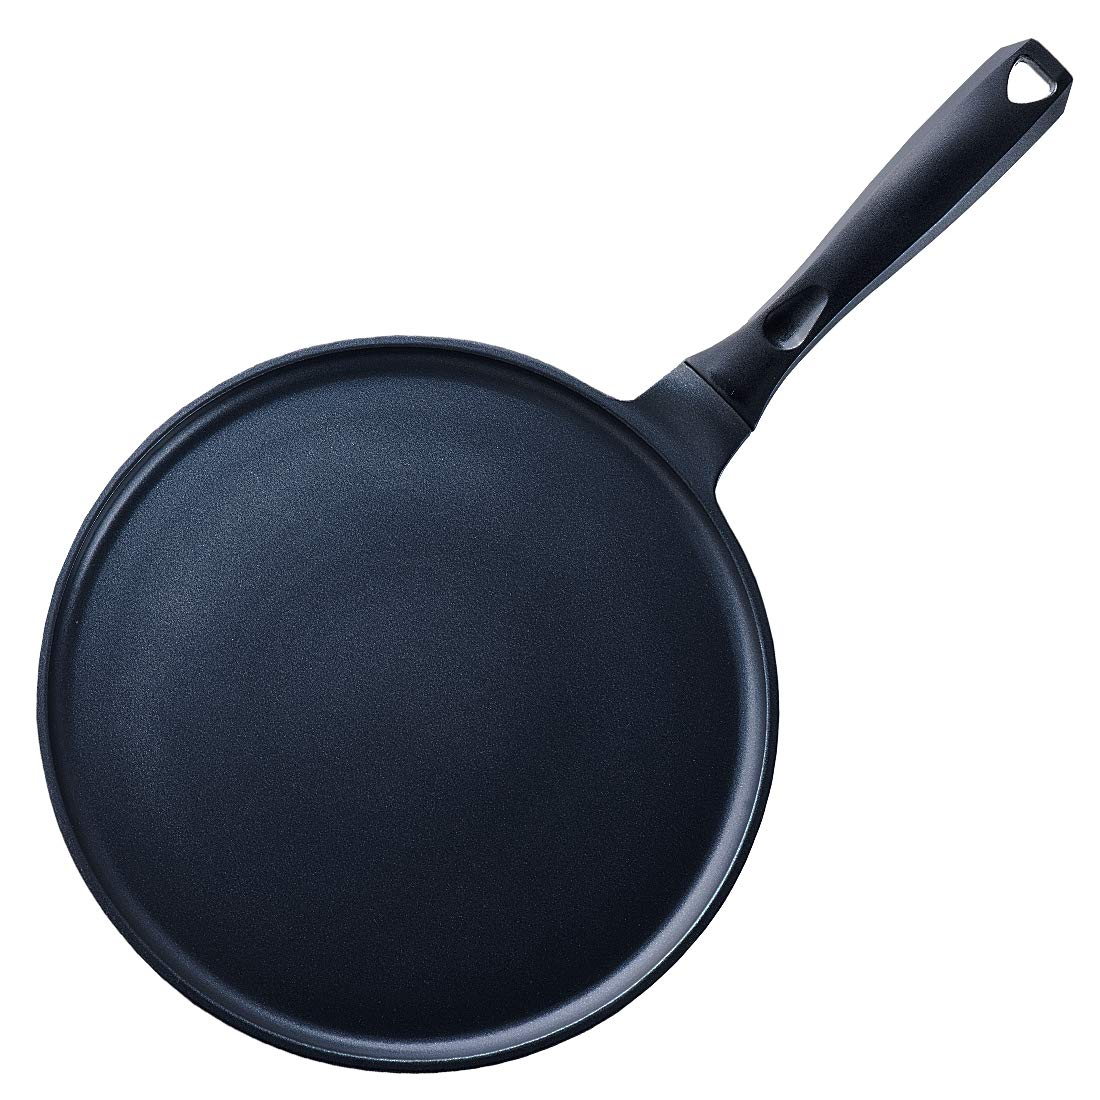 Crepe Pan Nonstick Die-cast Aluminum Non-stick Induction Compatible Flat Tawa Griddle,11 Inches by S.KITCHN by S.KITCHN